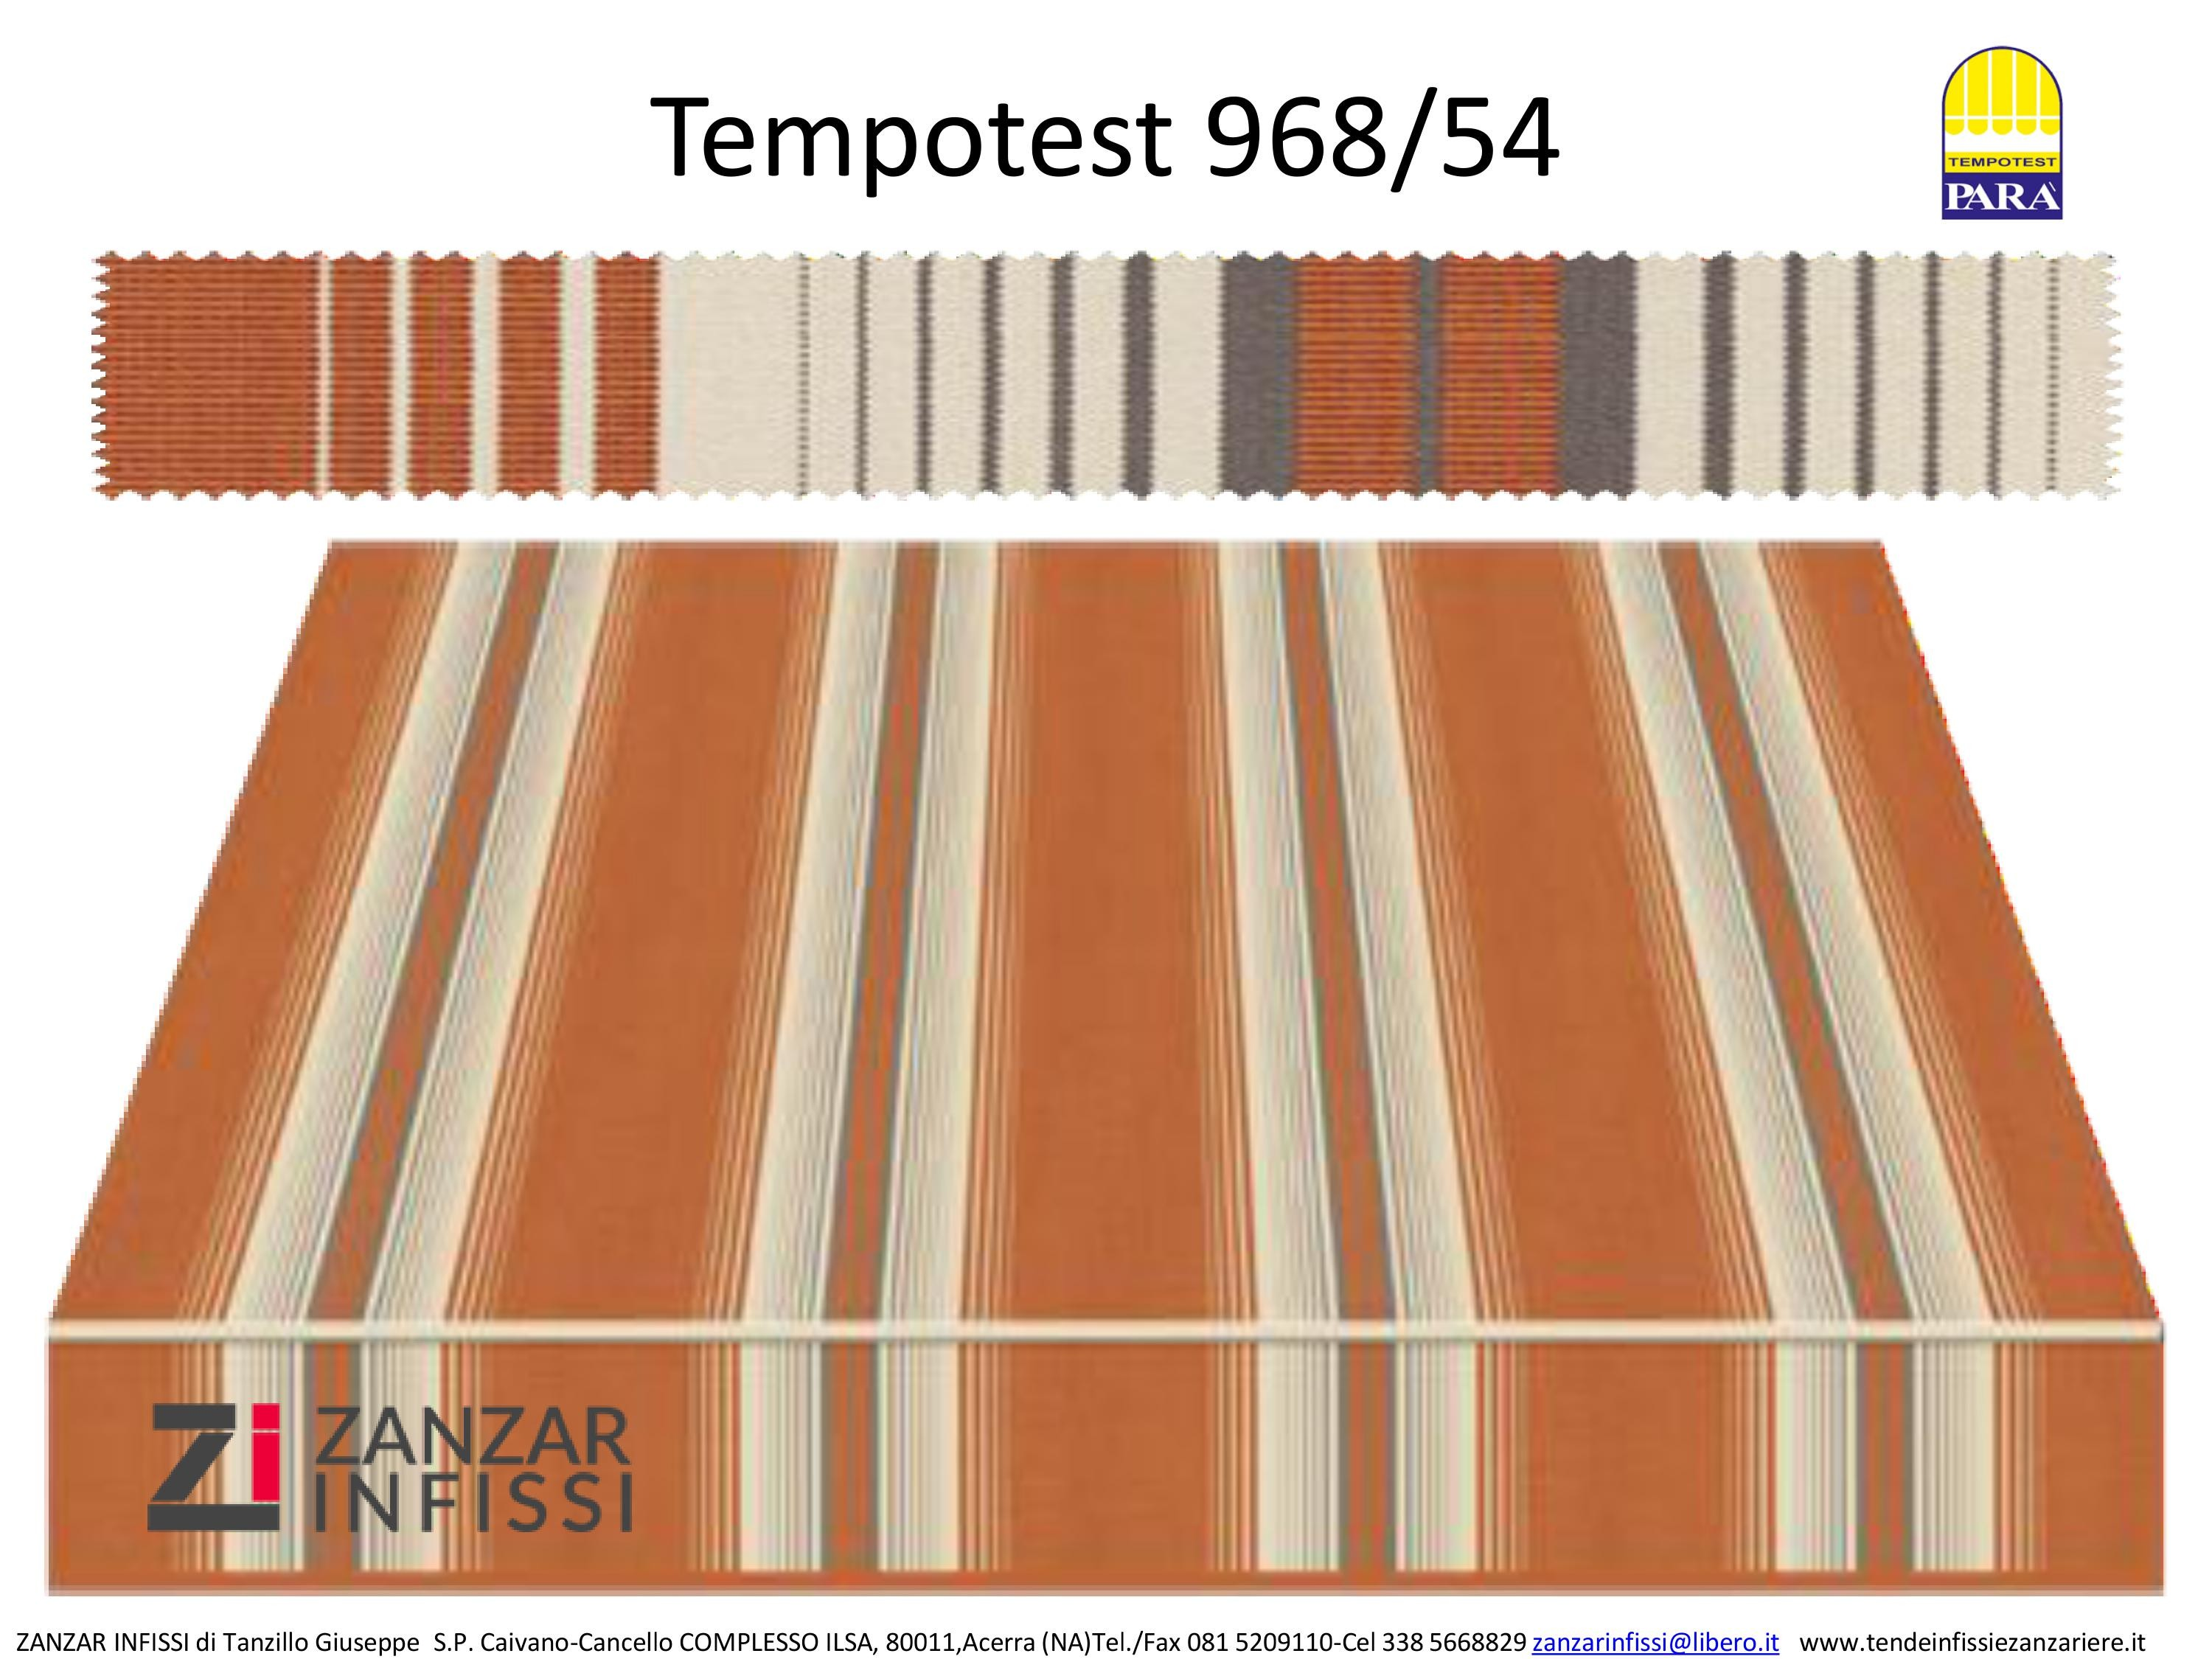 Tempotest 968/54